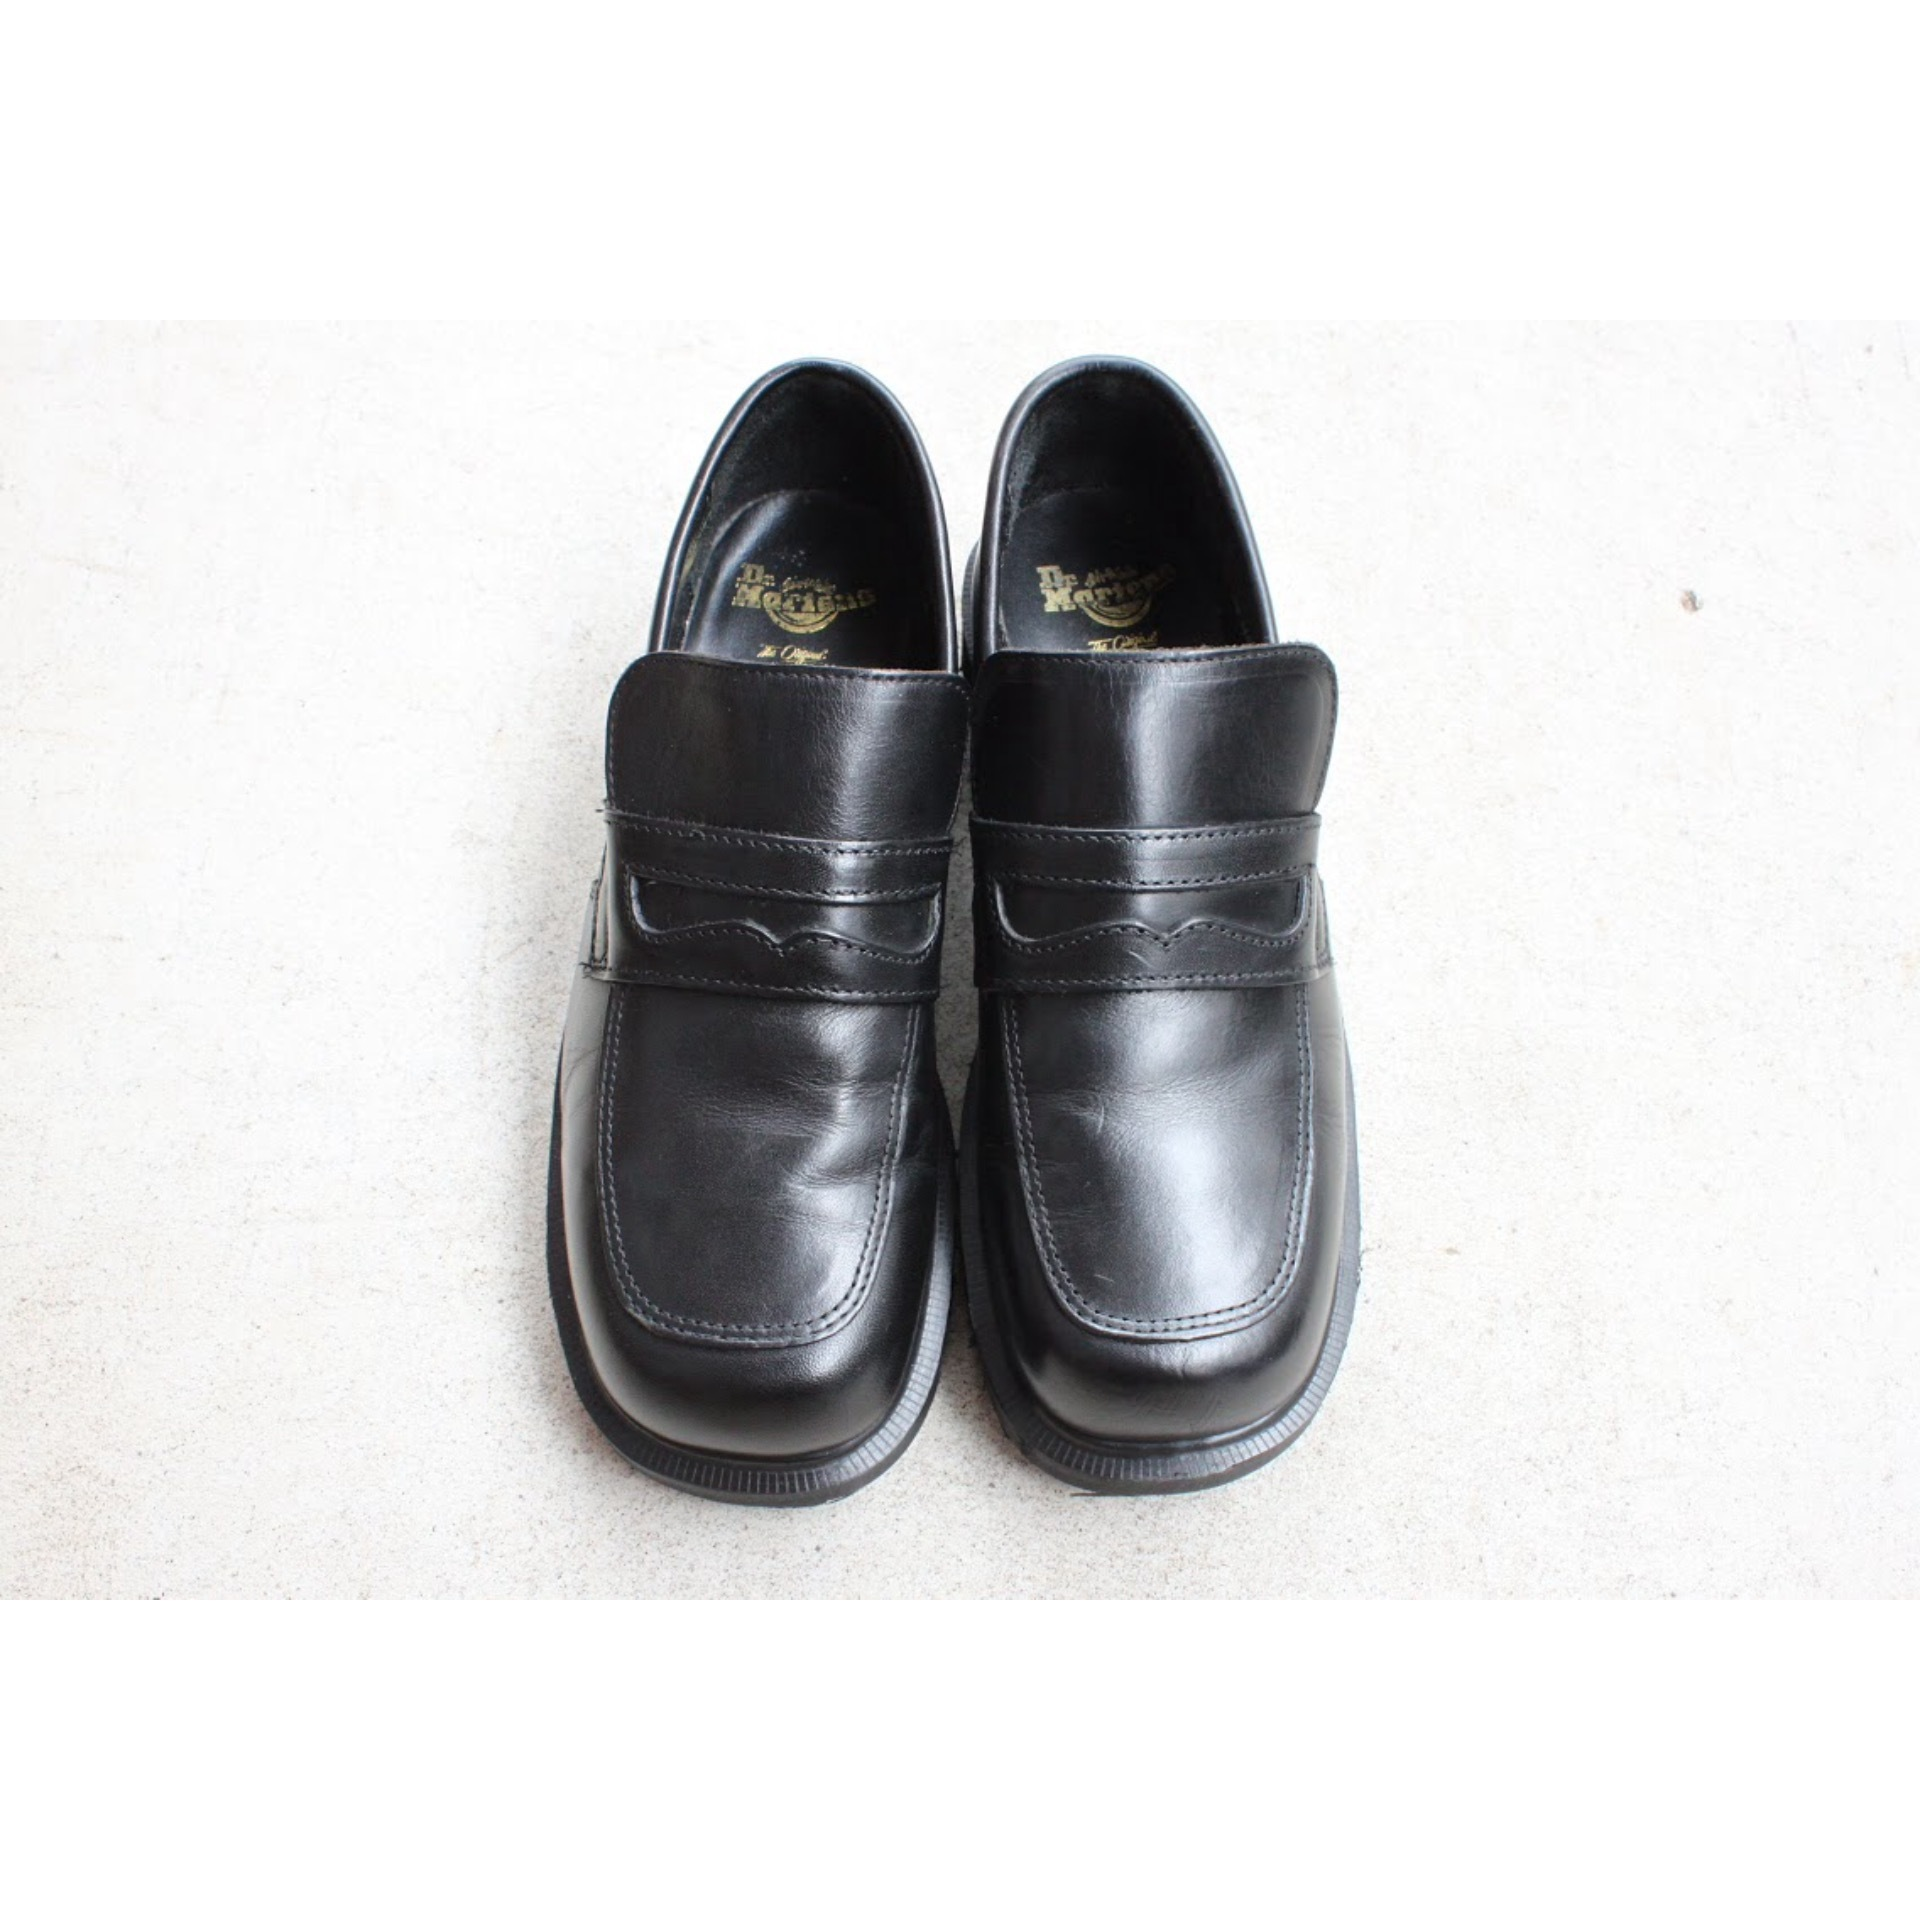 Dr. Martins loafers Made in England Size 5